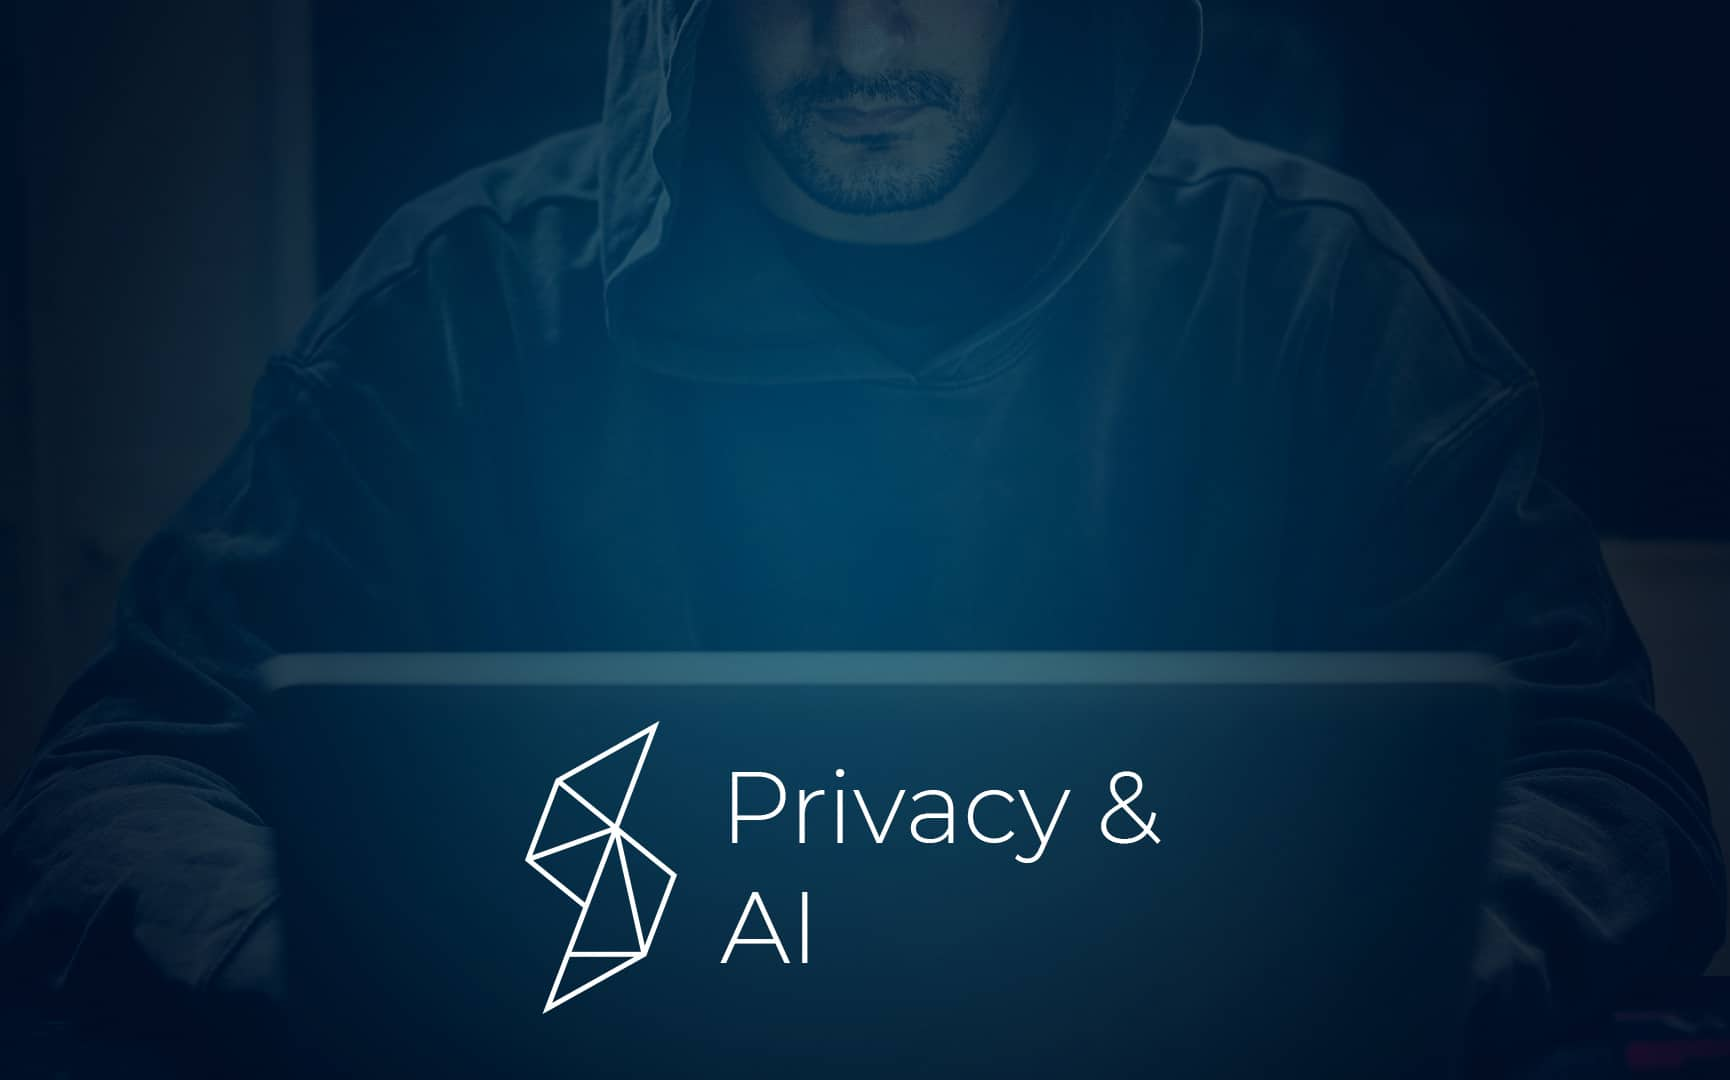 Privacy & AI: How to integrate privacy in the design of AI systems?